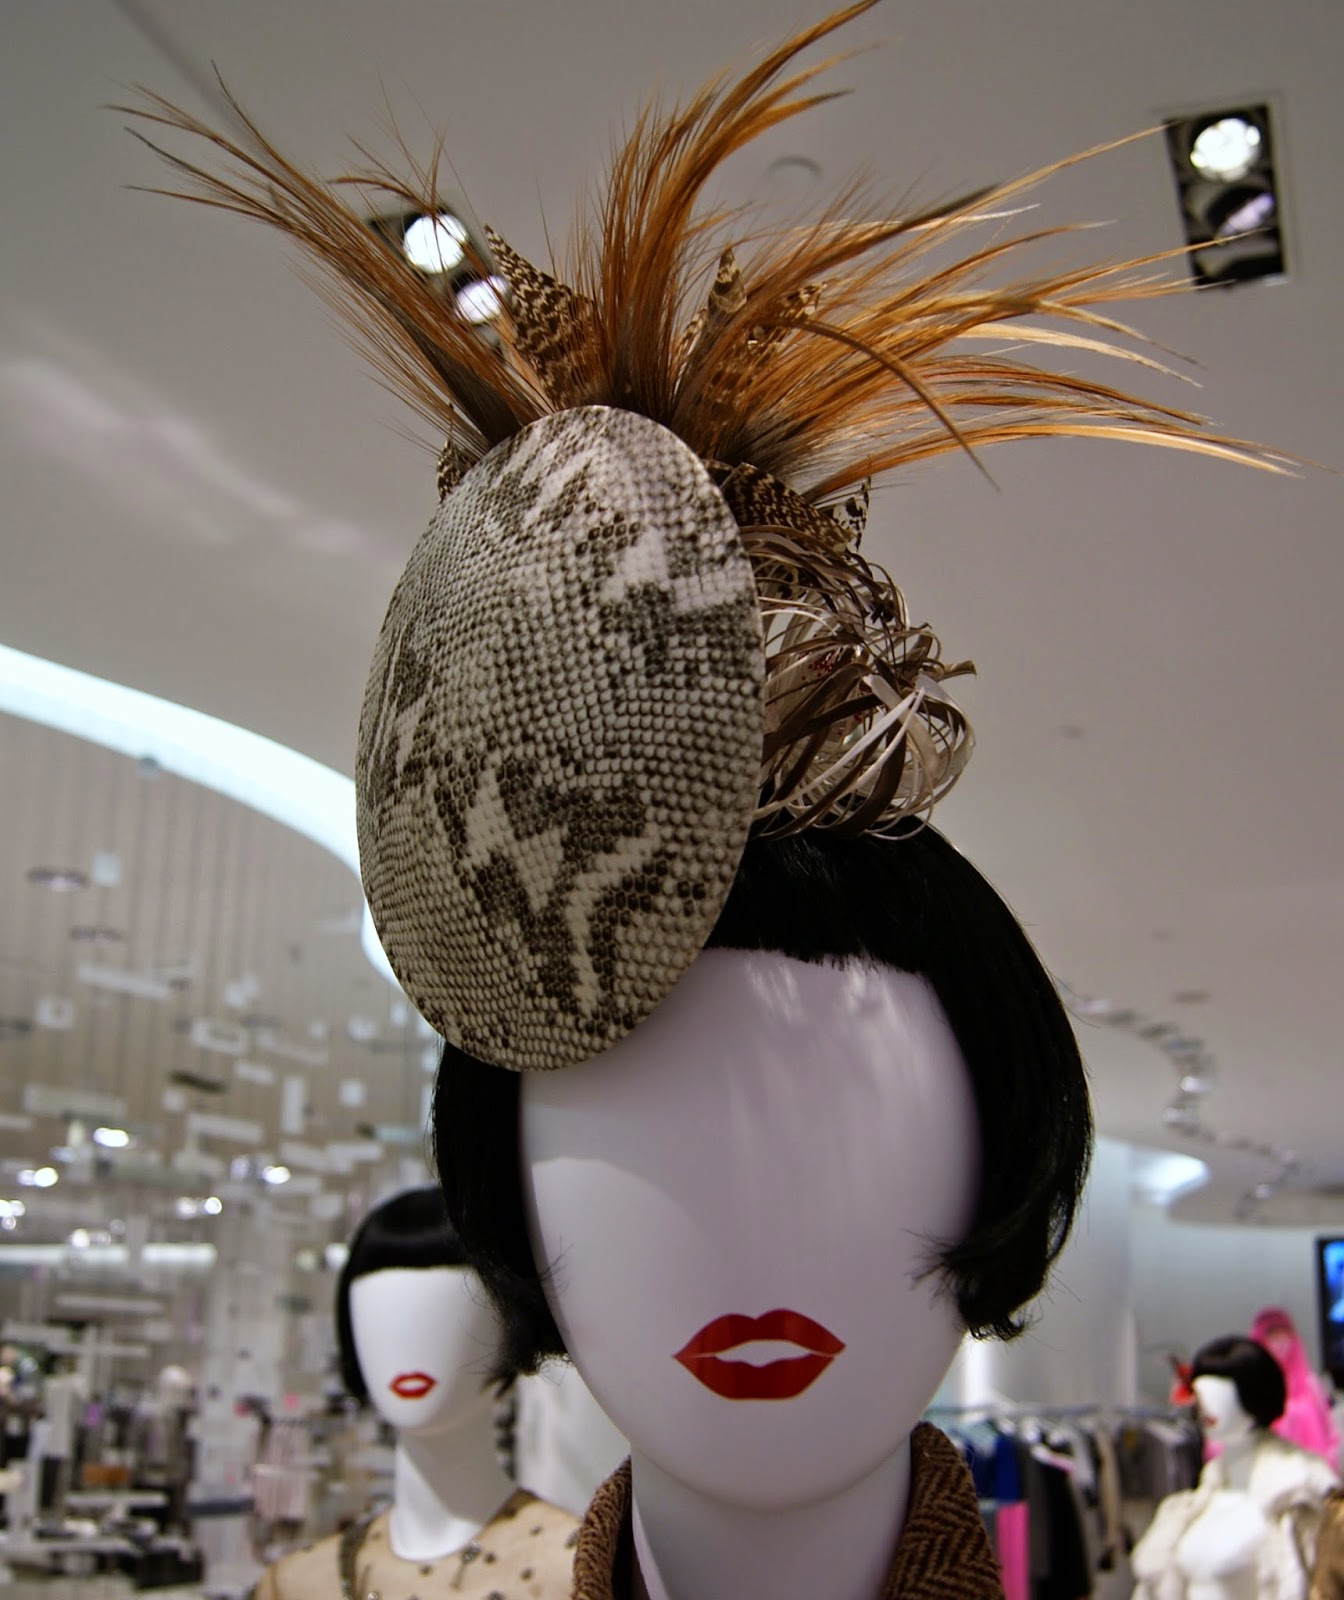 Fashion Blows Exhibit at Hudson's Bay in Toronto, Isabella, Daupne Guinness, Style, Culture, foundation, aleander mcqueen, philip treacy, suicide,the purple scarf, melanie.ps, ontario, canada, the room, Phiip Treacy, snakeskin, dome, hat